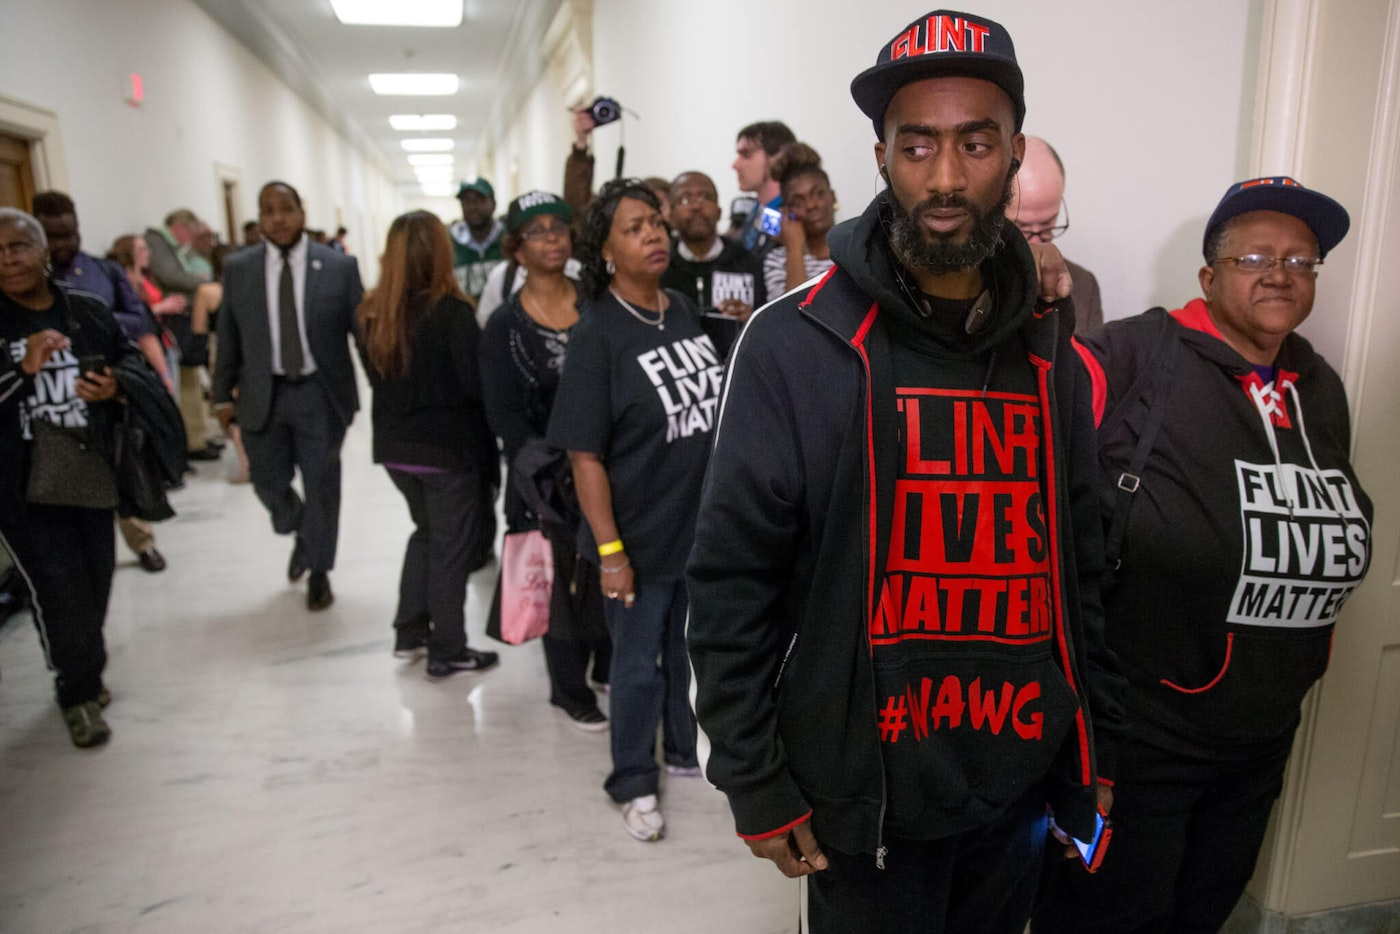 "Flint residents and supporters wear shirts in 2016 that reads ""Flint Lives Matter"" as they wait outside the room where Michigan Gov. Rick Snyder and EPA Administrator Gina McCarthy testify before a House Oversight and Government Reform Committee hearing in Washington to look into the circumstances surrounding high levels of lead found in many residents' tap water in Flint, Michigan. (AP Photo/Andrew Harnik)"